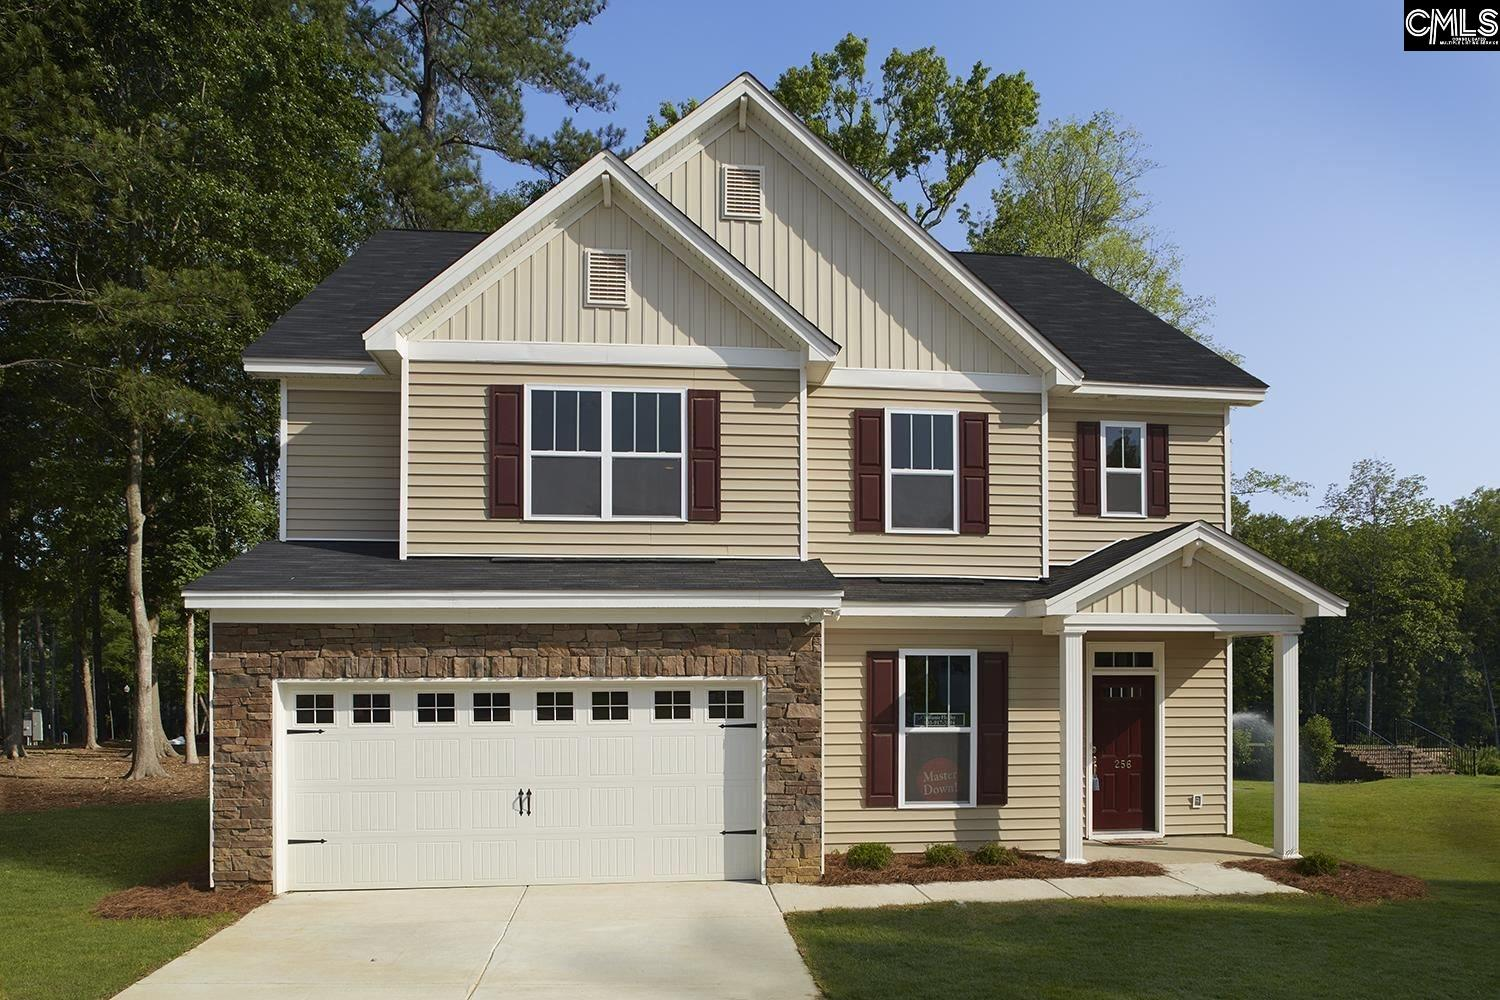 590 Hopscotch #179 Lexington, SC 29072